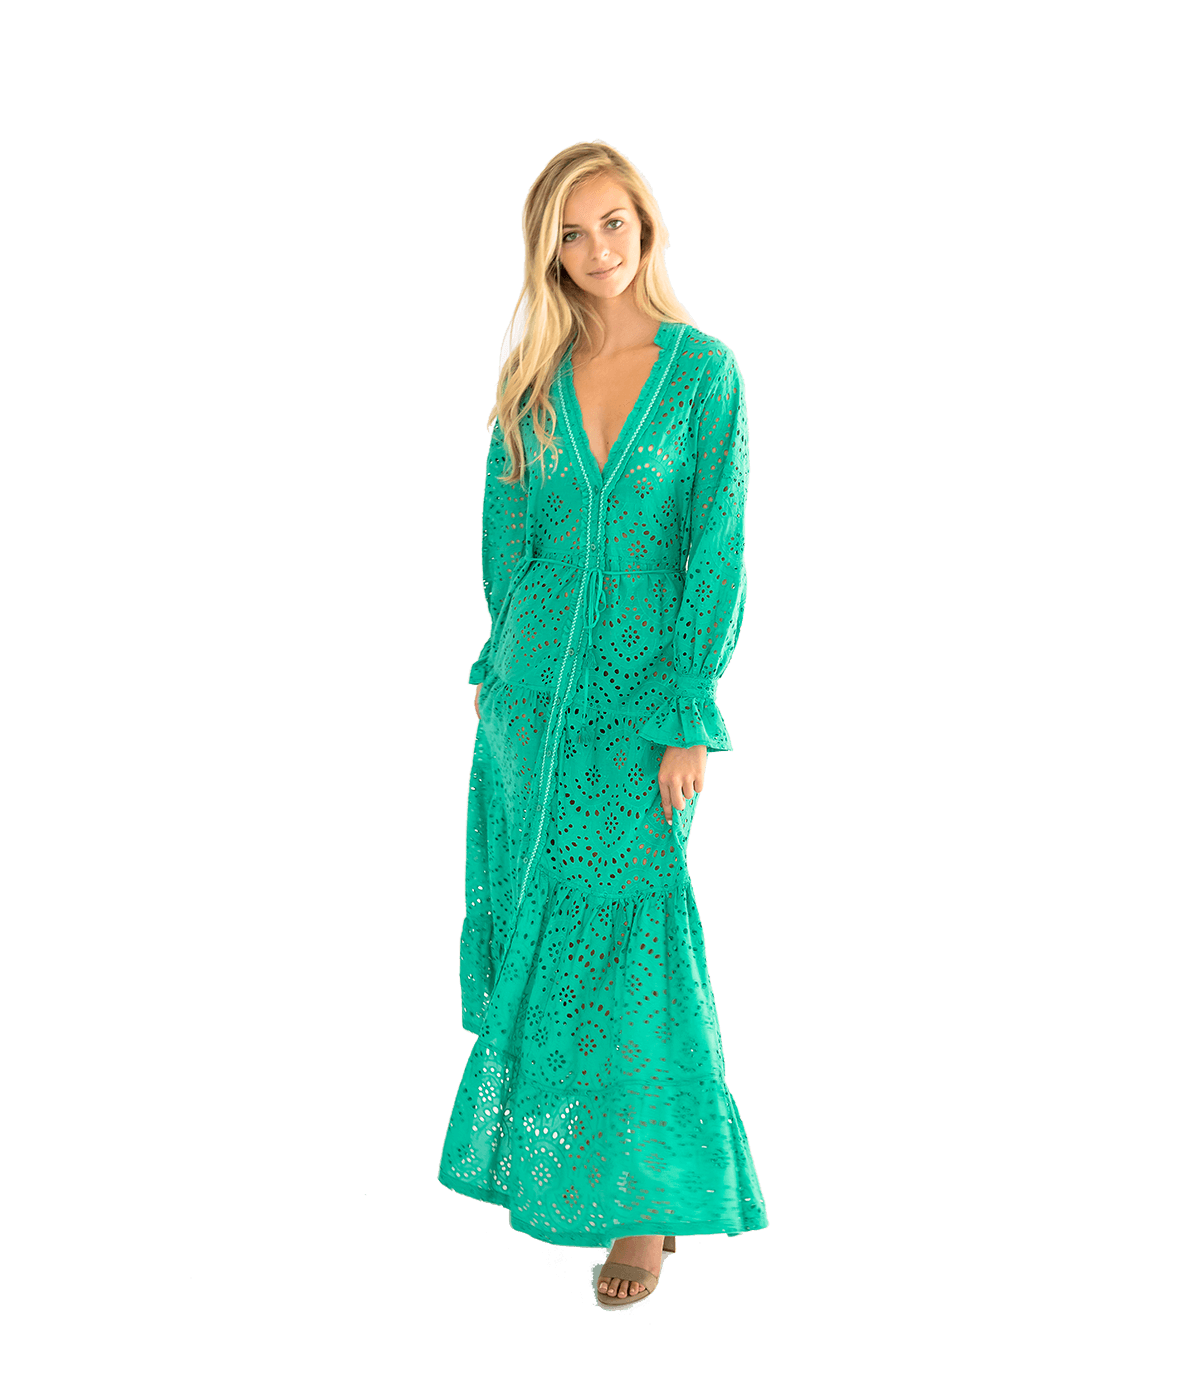 FINAL SALE Rita Eyelet Ruffle Beach Dress - Green - Lady Jetset